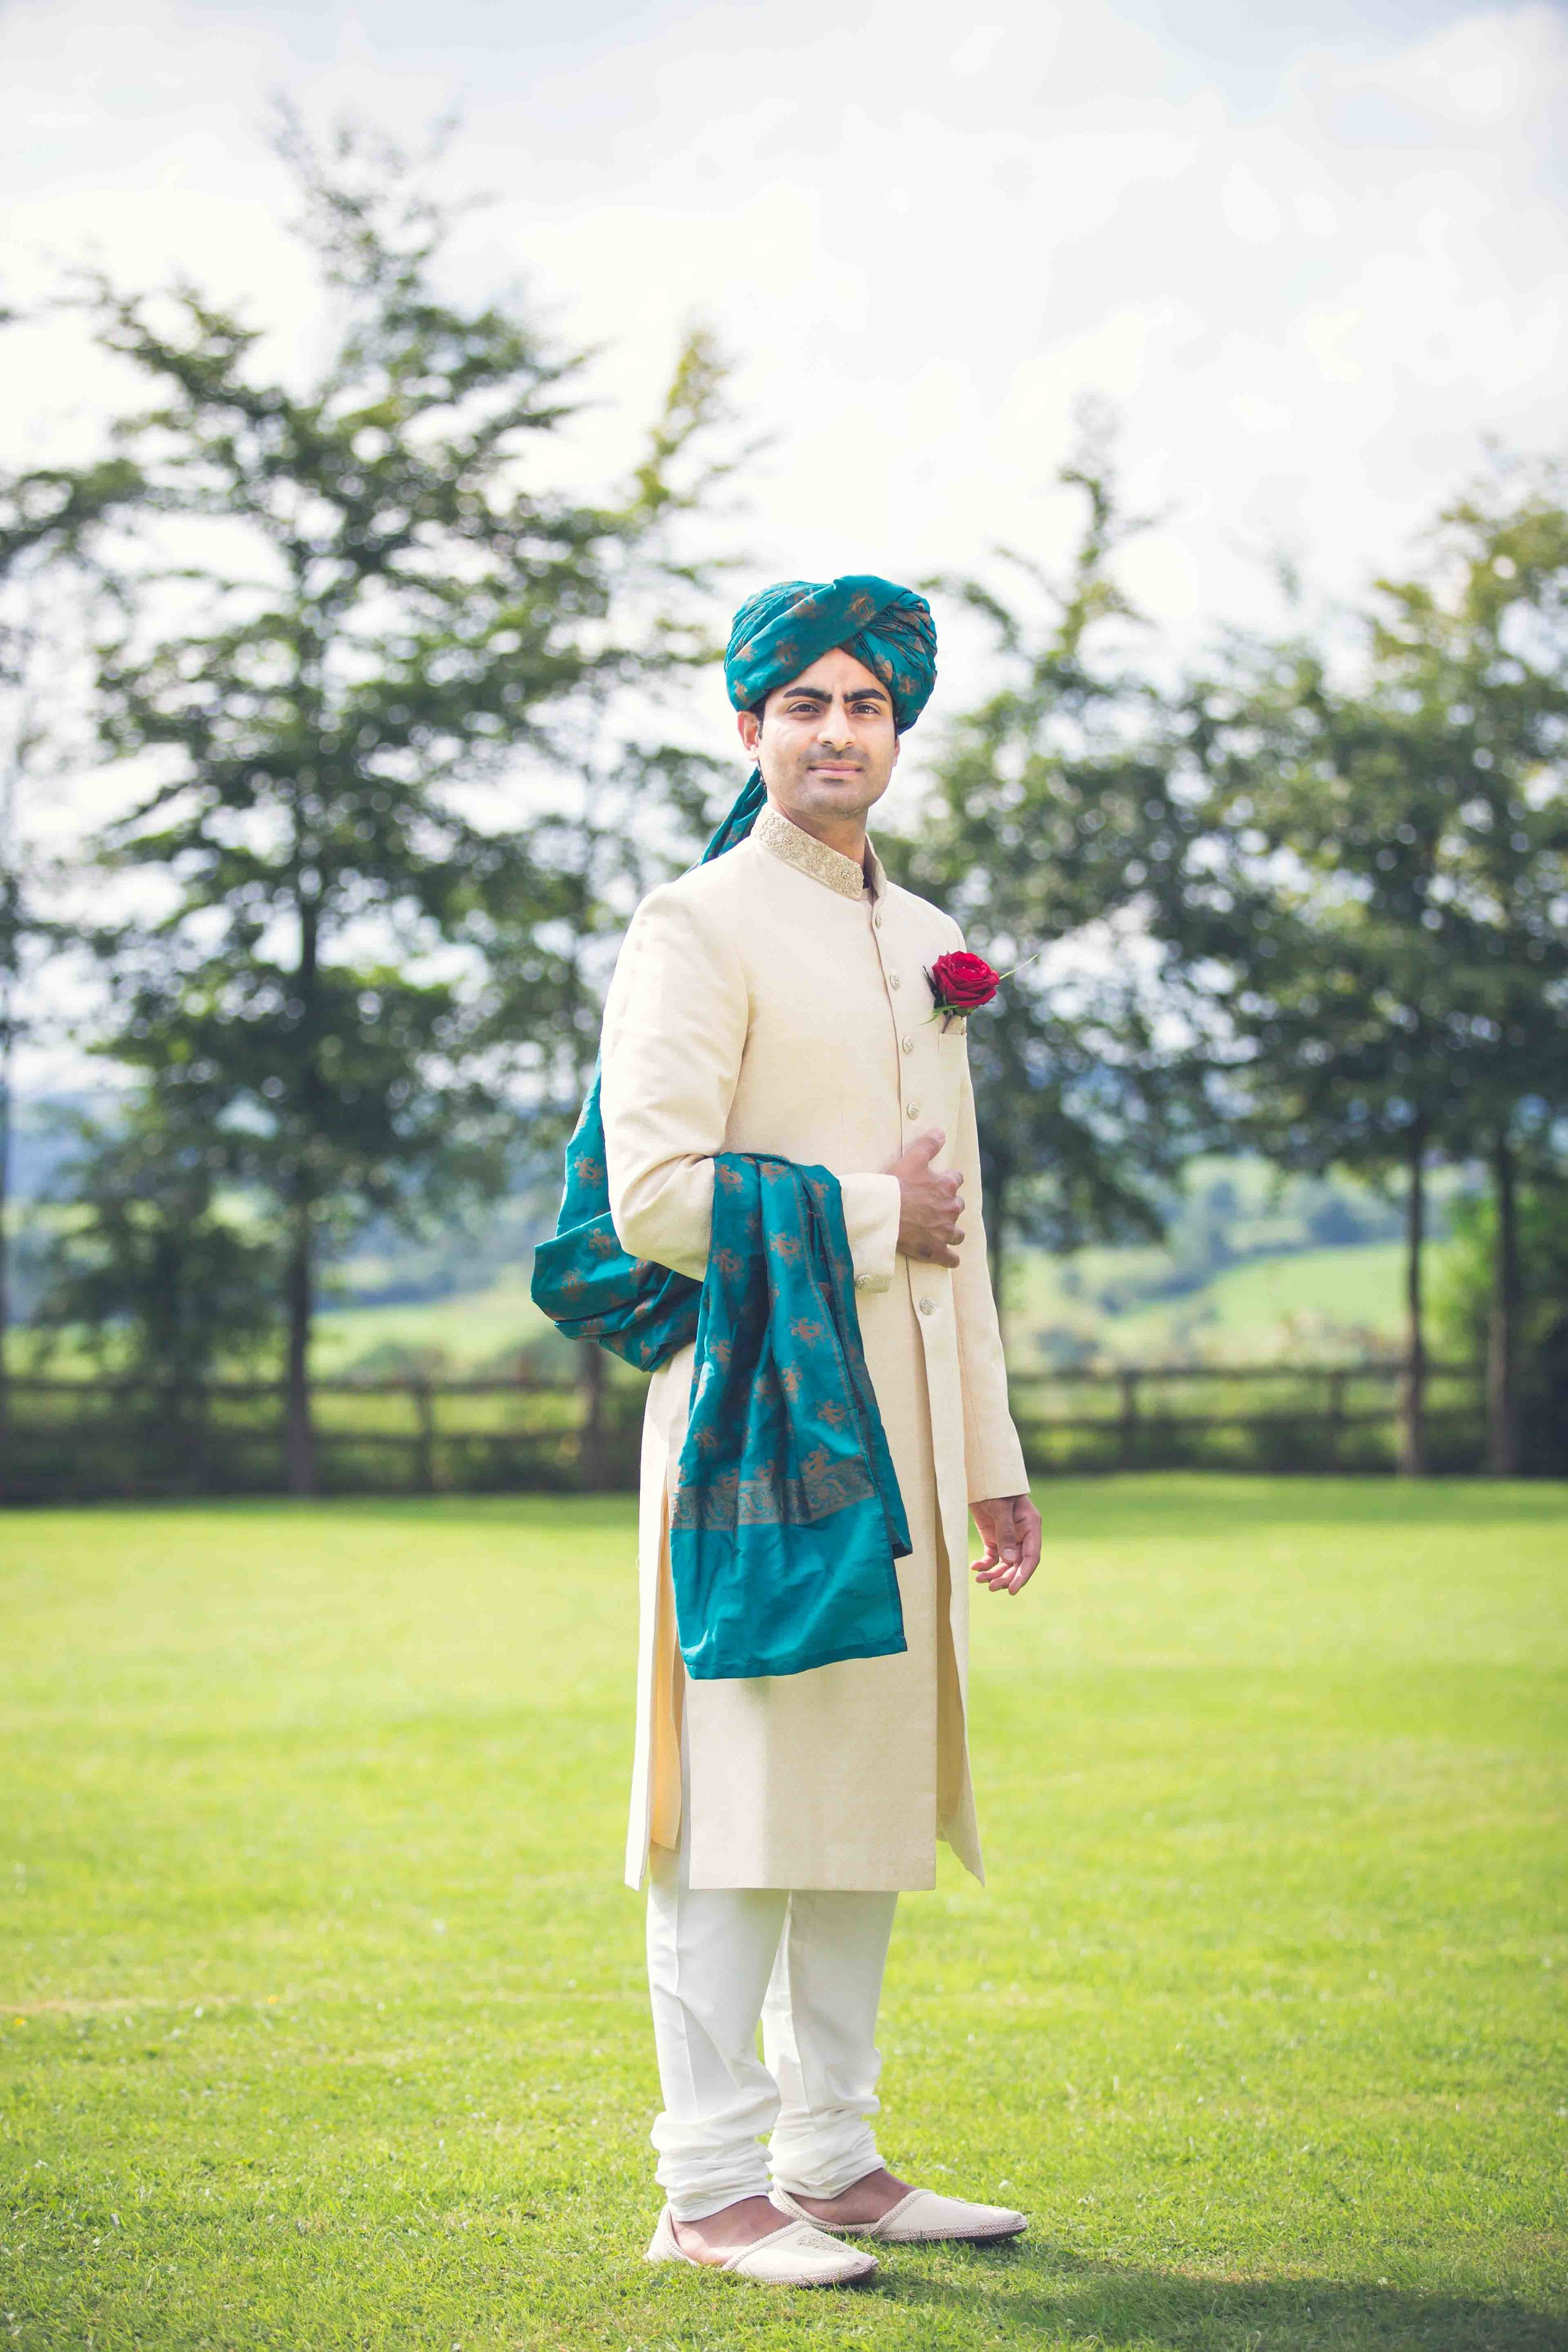 Opu Sultan Photography Asian wedding photography scotland edinburgh glasgow manchester birmingham london-94.jpg